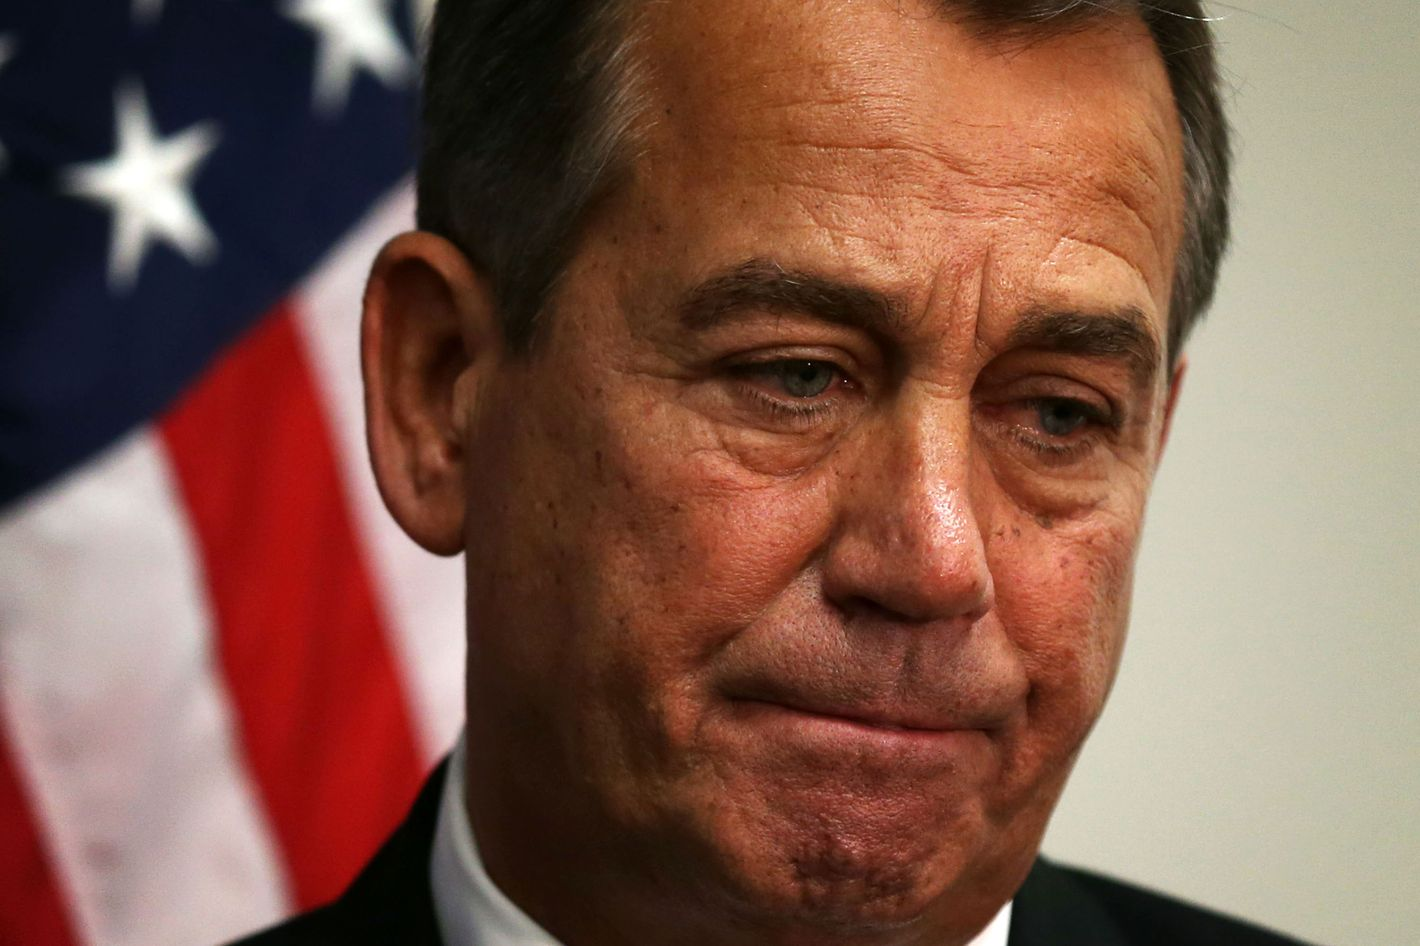 U.S. Speaker of the House Rep. John Boehner (R-OH) listens during a media availability after a House Republican Conference meeting December 18, 2012 on Capitol Hill in Washington, DC. Speaker Boehner announced that he is moving to a plan B to solve the fiscal cliff issue and he will put a bill on the floor that increases taxes for people whose incomes are more than one million dollars.